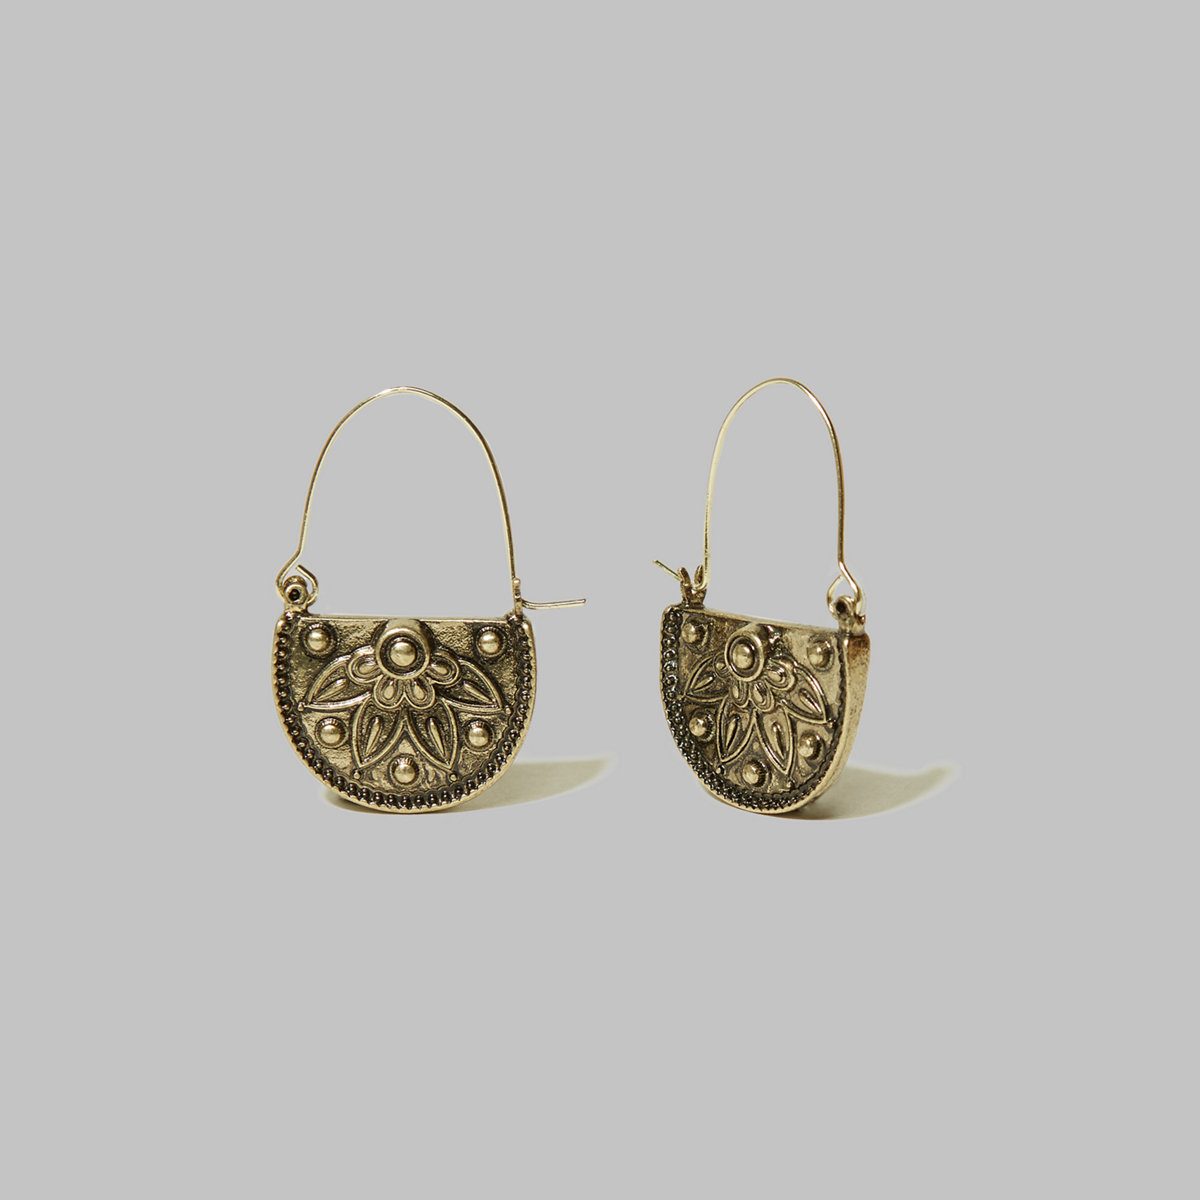 Etched Floral Earrings